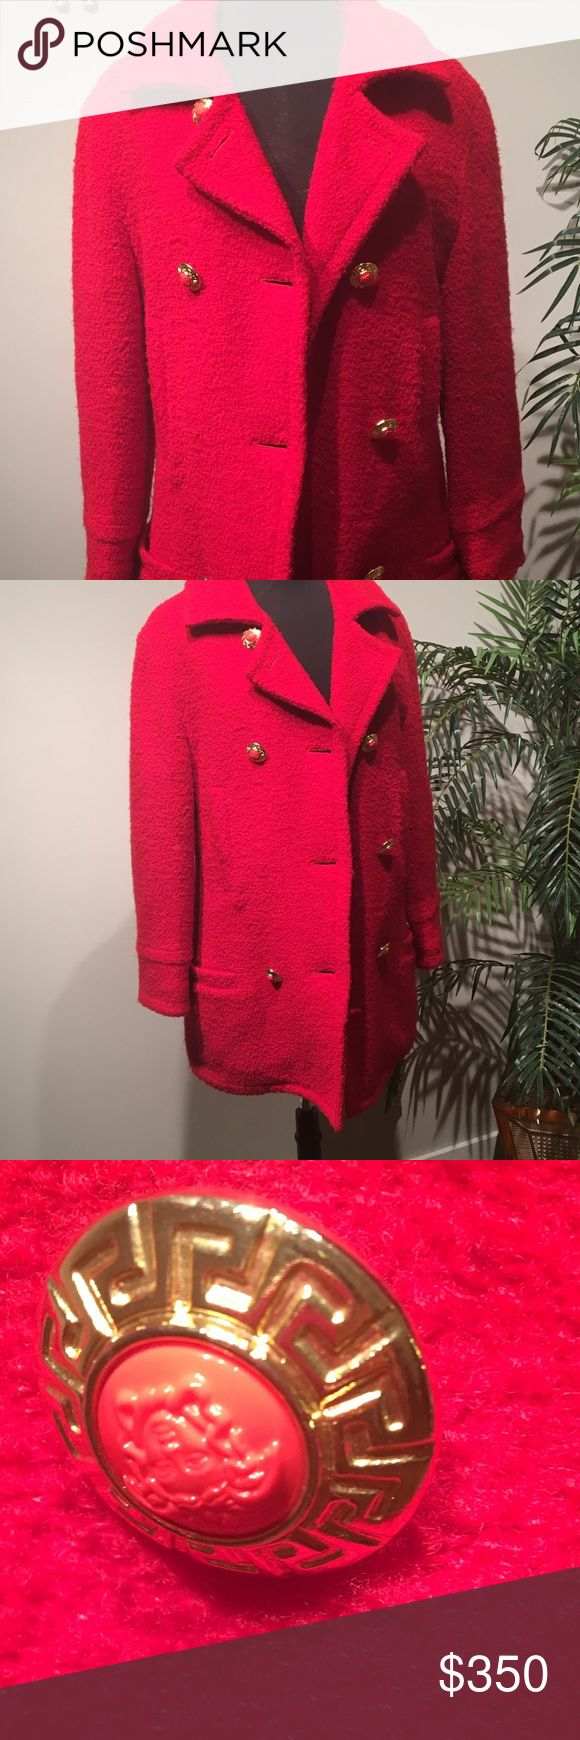 Vintage Versace Coat This is a one of a kind vintage Versace Coat in Red size Small  Great looking vintage condition Versace Jackets & Coats